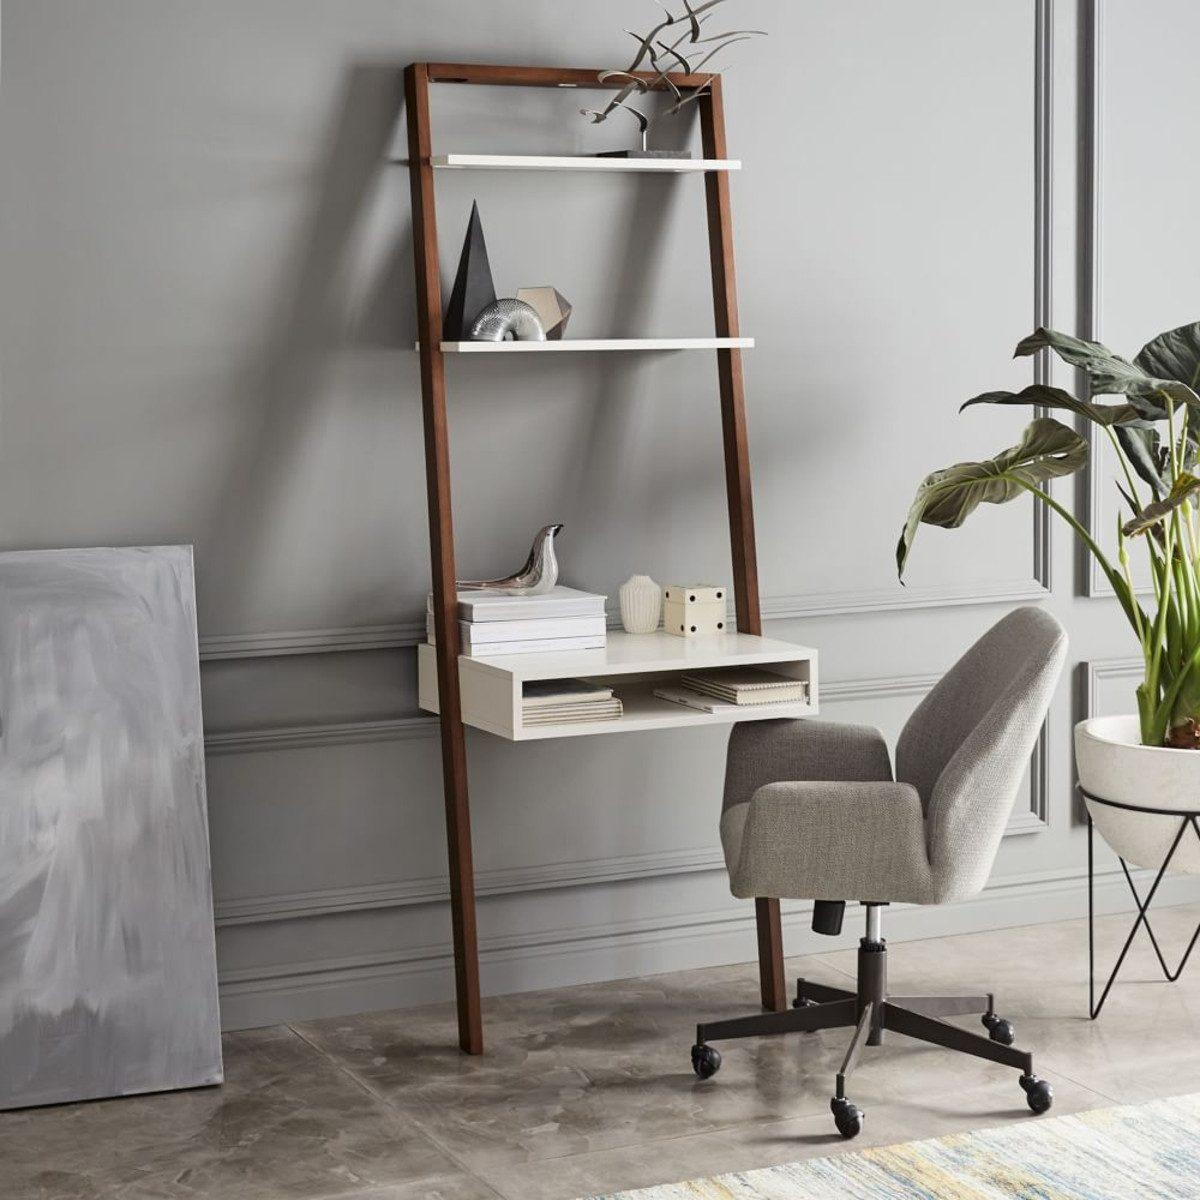 7 Space Saving Desks For Small Spaces   Ladder Design For Small Space   Stairway   Glass   Modern   Two Story House Stair   Limited Space